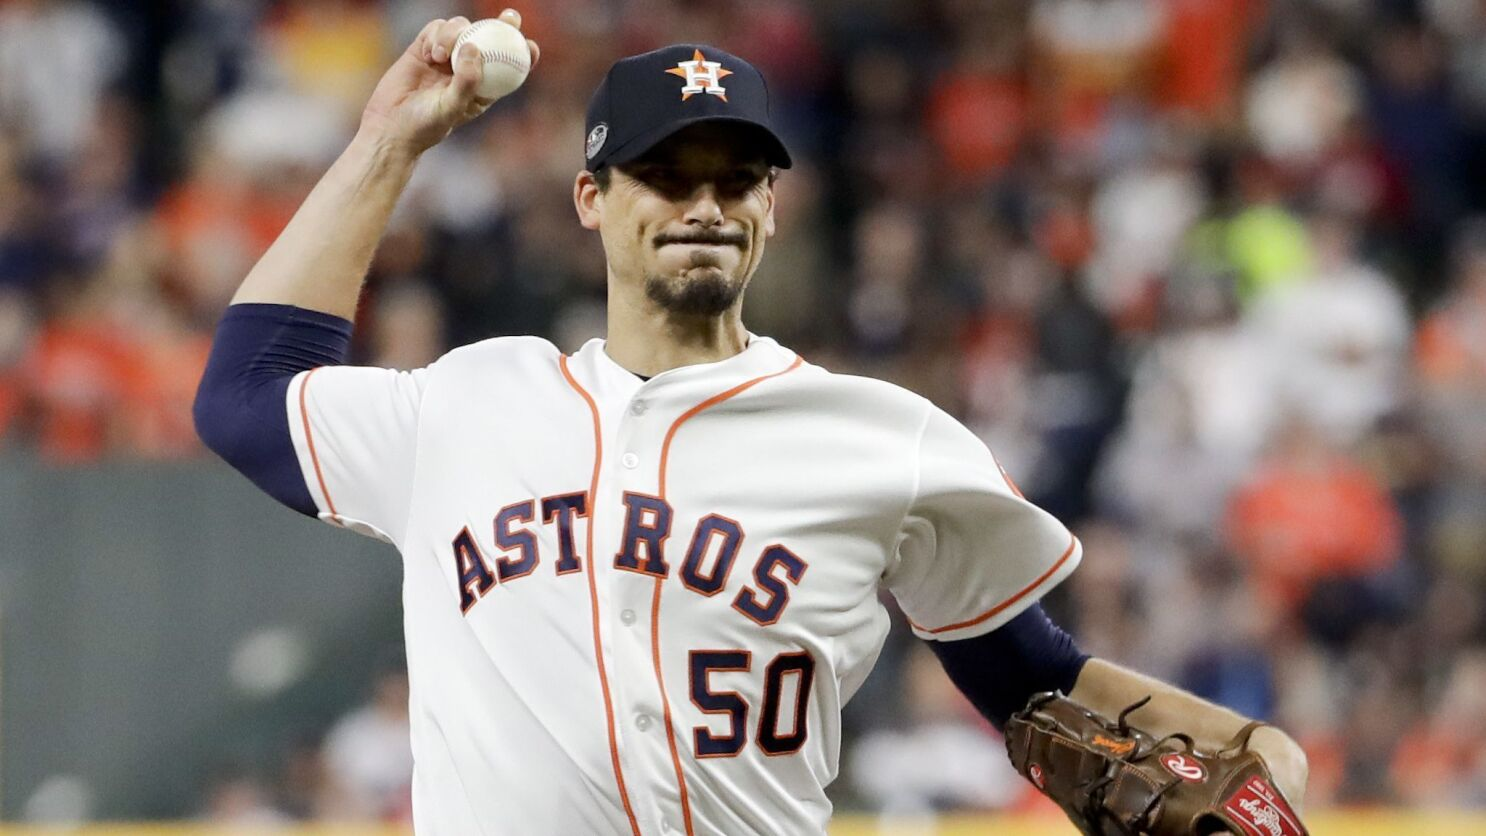 mlb charlie morton and rays agree on 30m two year deal los angeles times mlb charlie morton and rays agree on